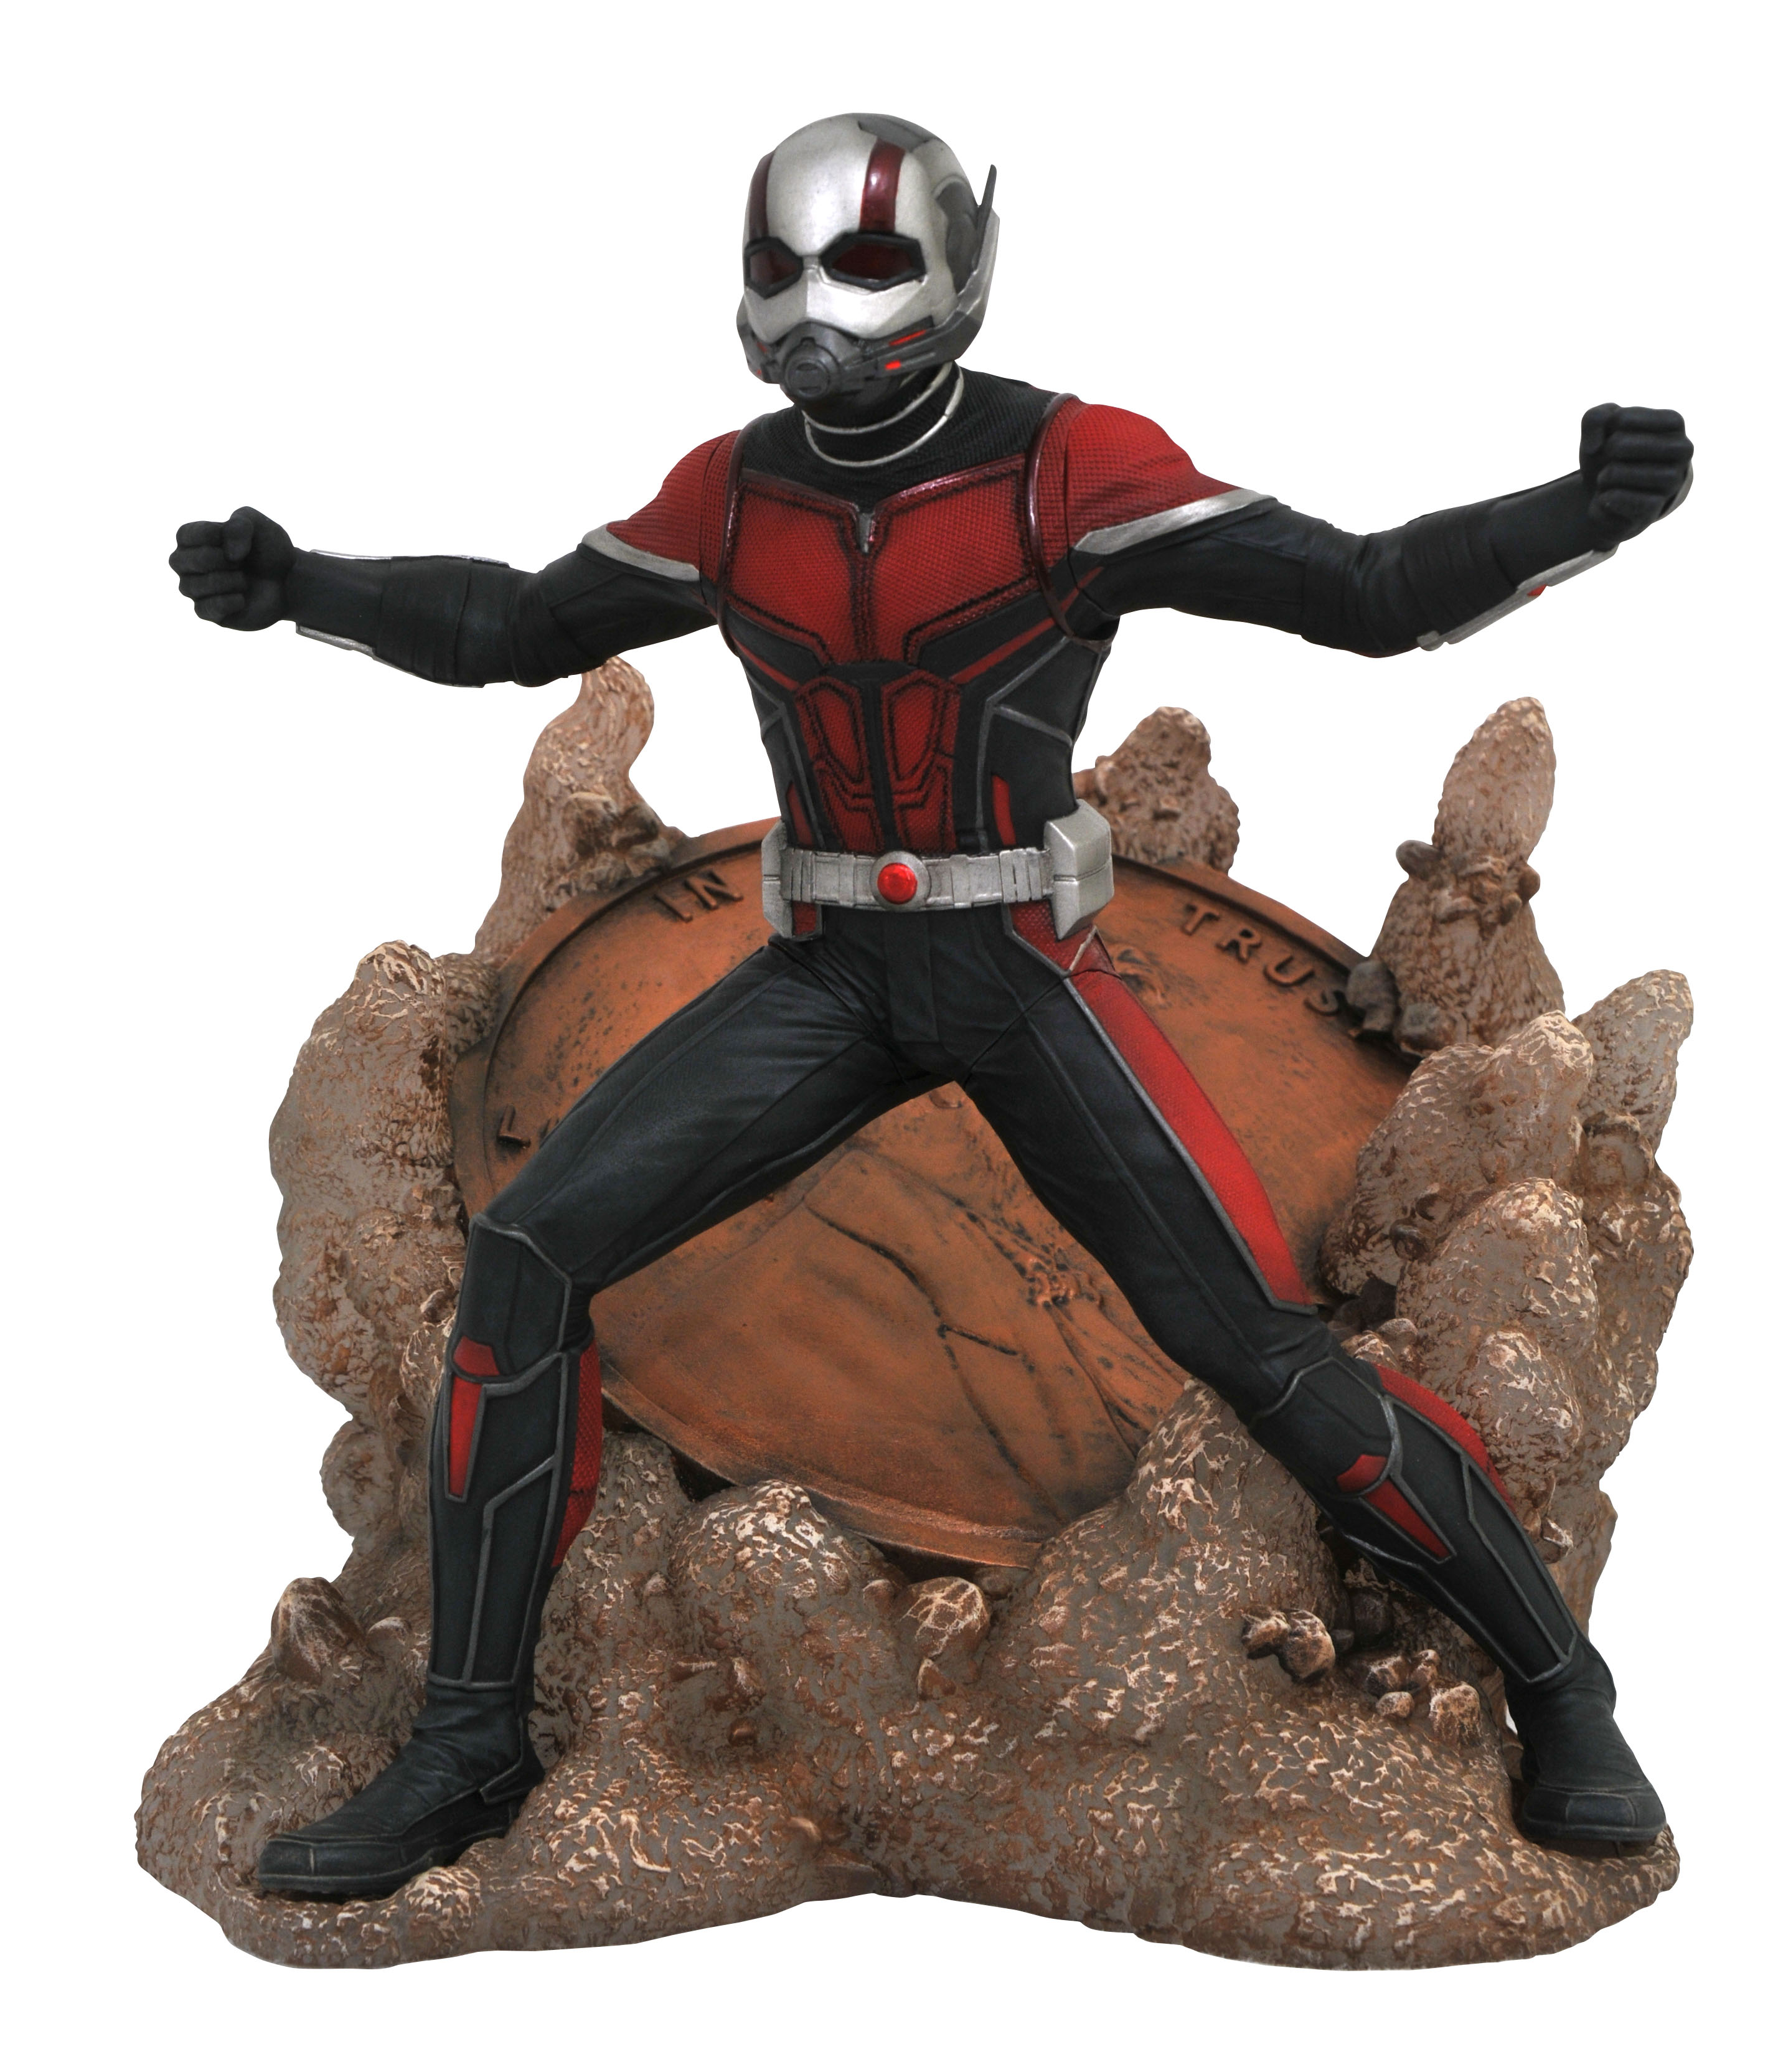 MARVEL GALLERY ANT-MAN & THE WASP MOVIE ANT-MAN PVC FIGURE (